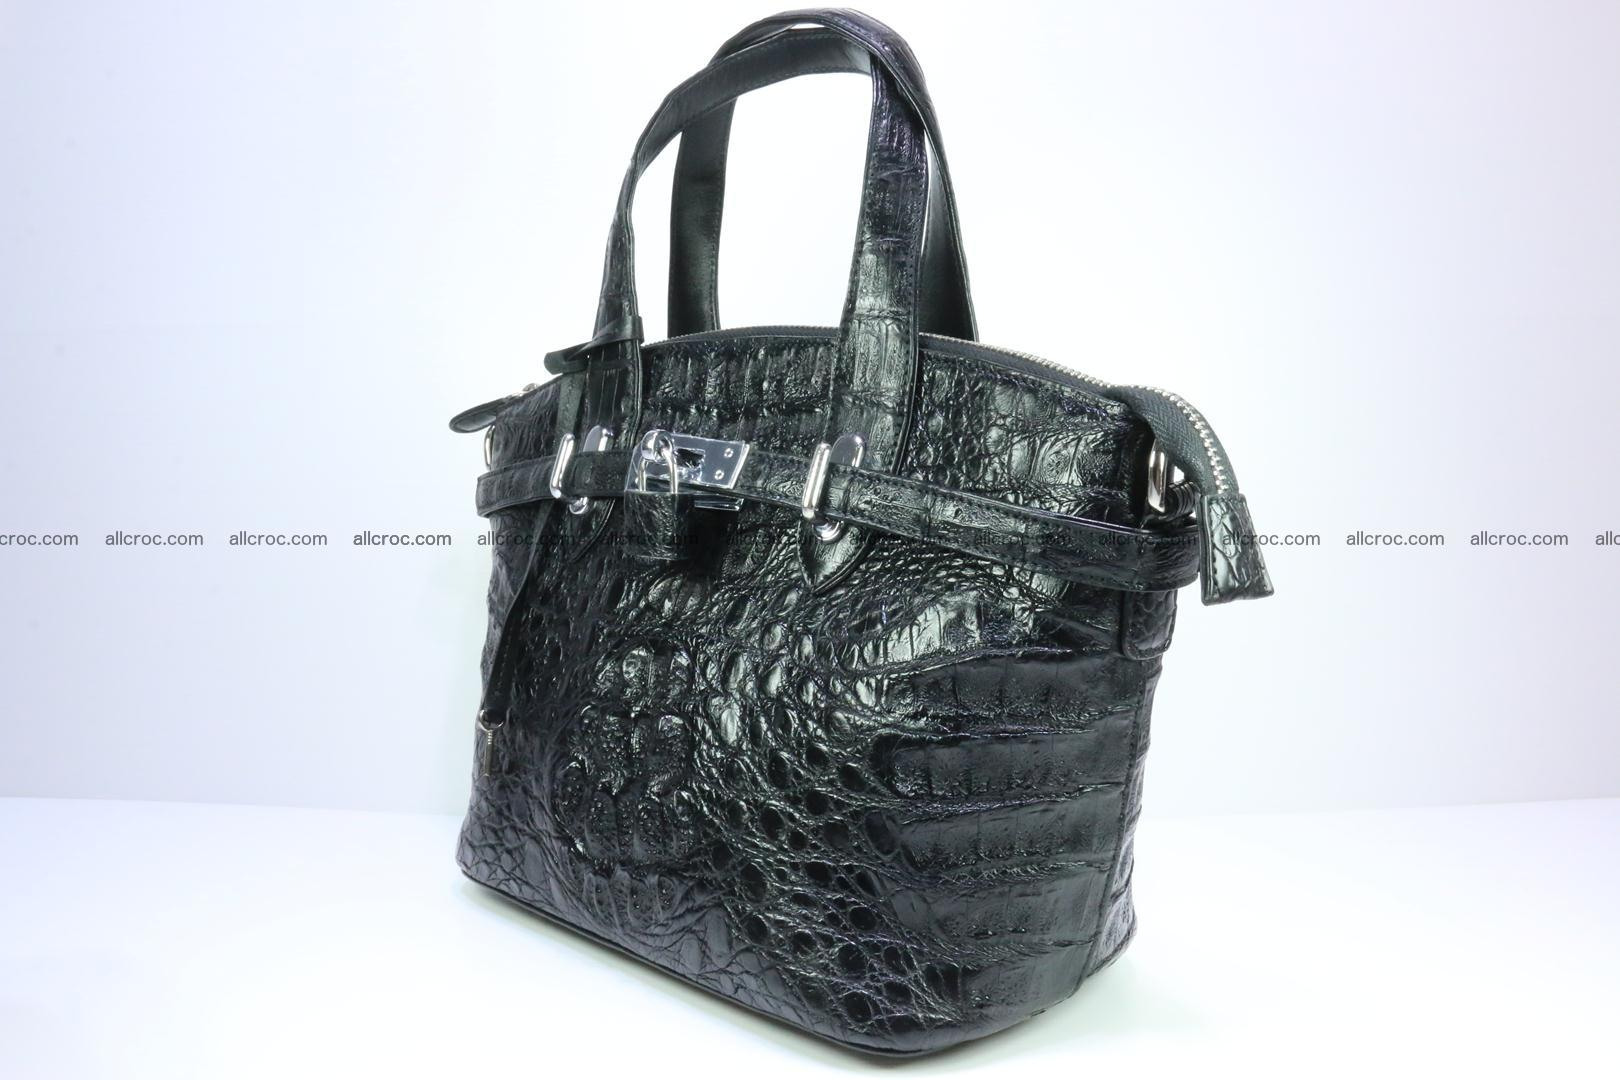 Genuine crocodile handbag for ladies 051 Foto 2